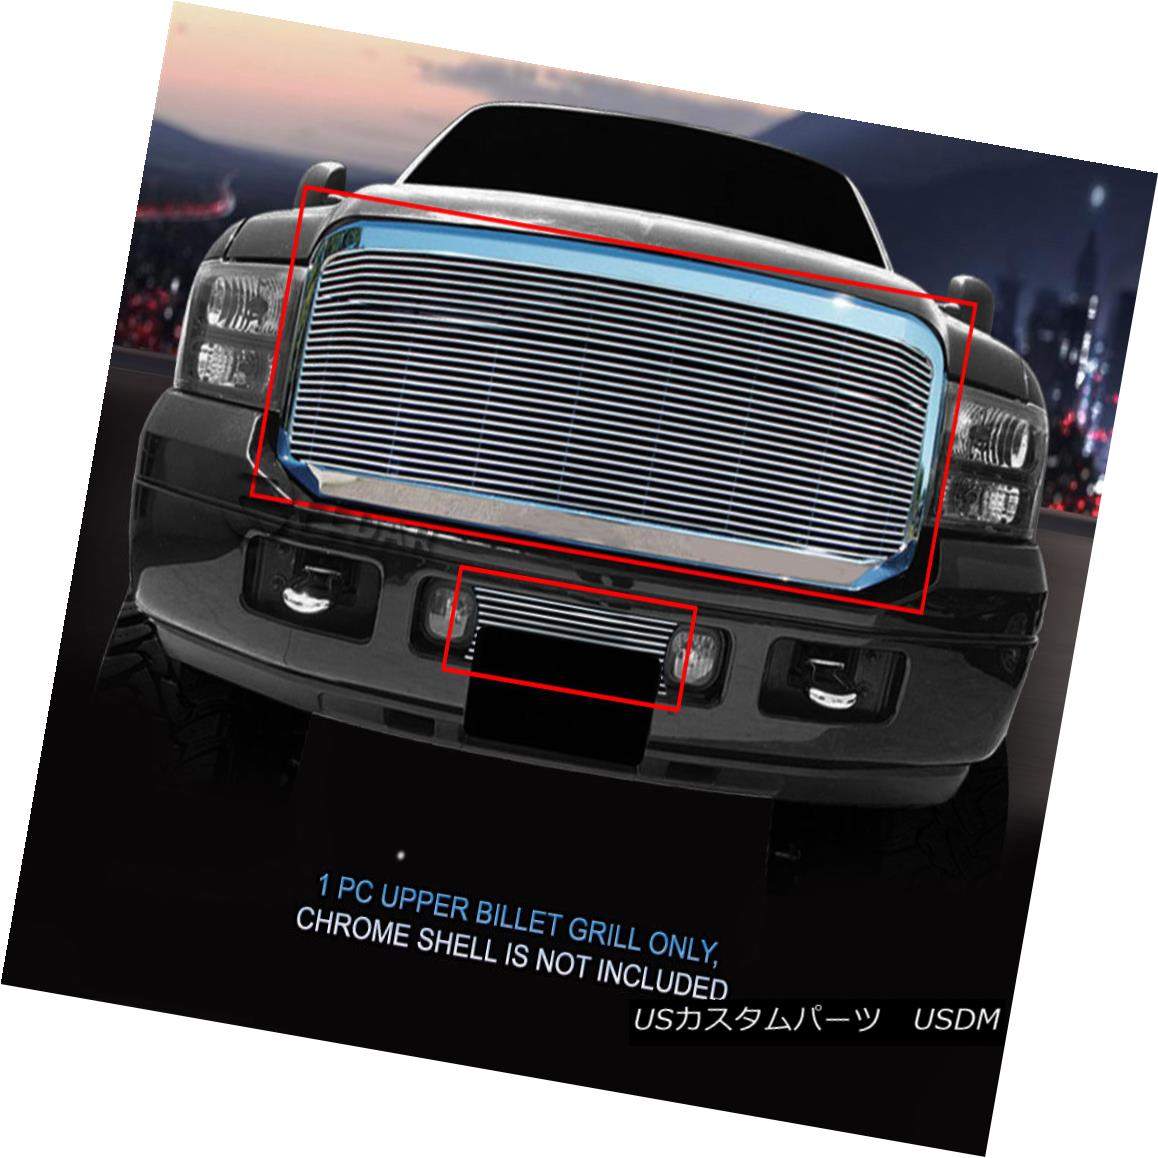 グリル For 05-07 Ford F-250 F350 F450 F550 Excursion Billet Grille Upper 1PC Fedar 05-07 Ford F-250 F350 F450 F550エクスカーションBillet Grille上段1PC Fedar